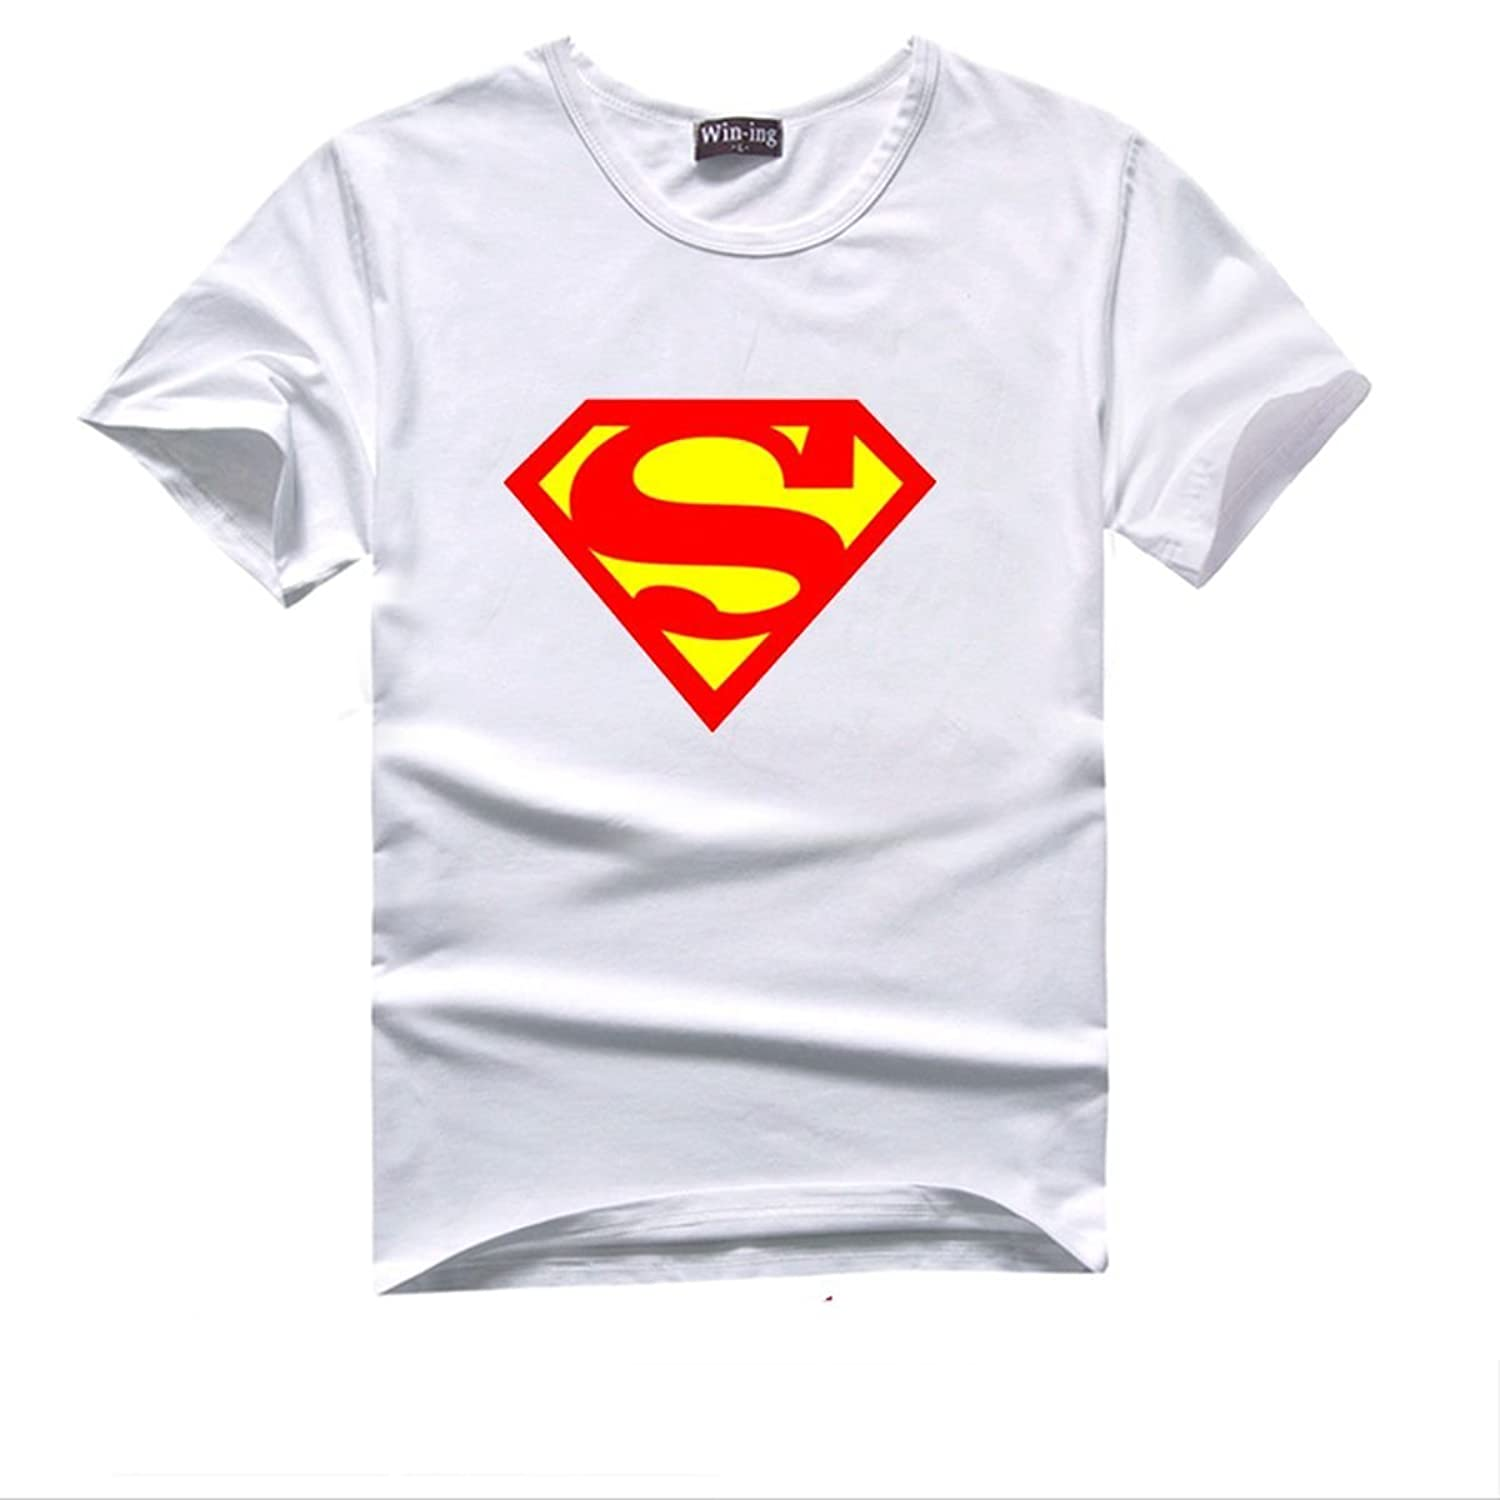 d56553be2 Buy Bioworld Men's Superman Logo Tee and other T-Shirts at Amazon.com. Our  wide selection is eligible for free shipping and free returns.